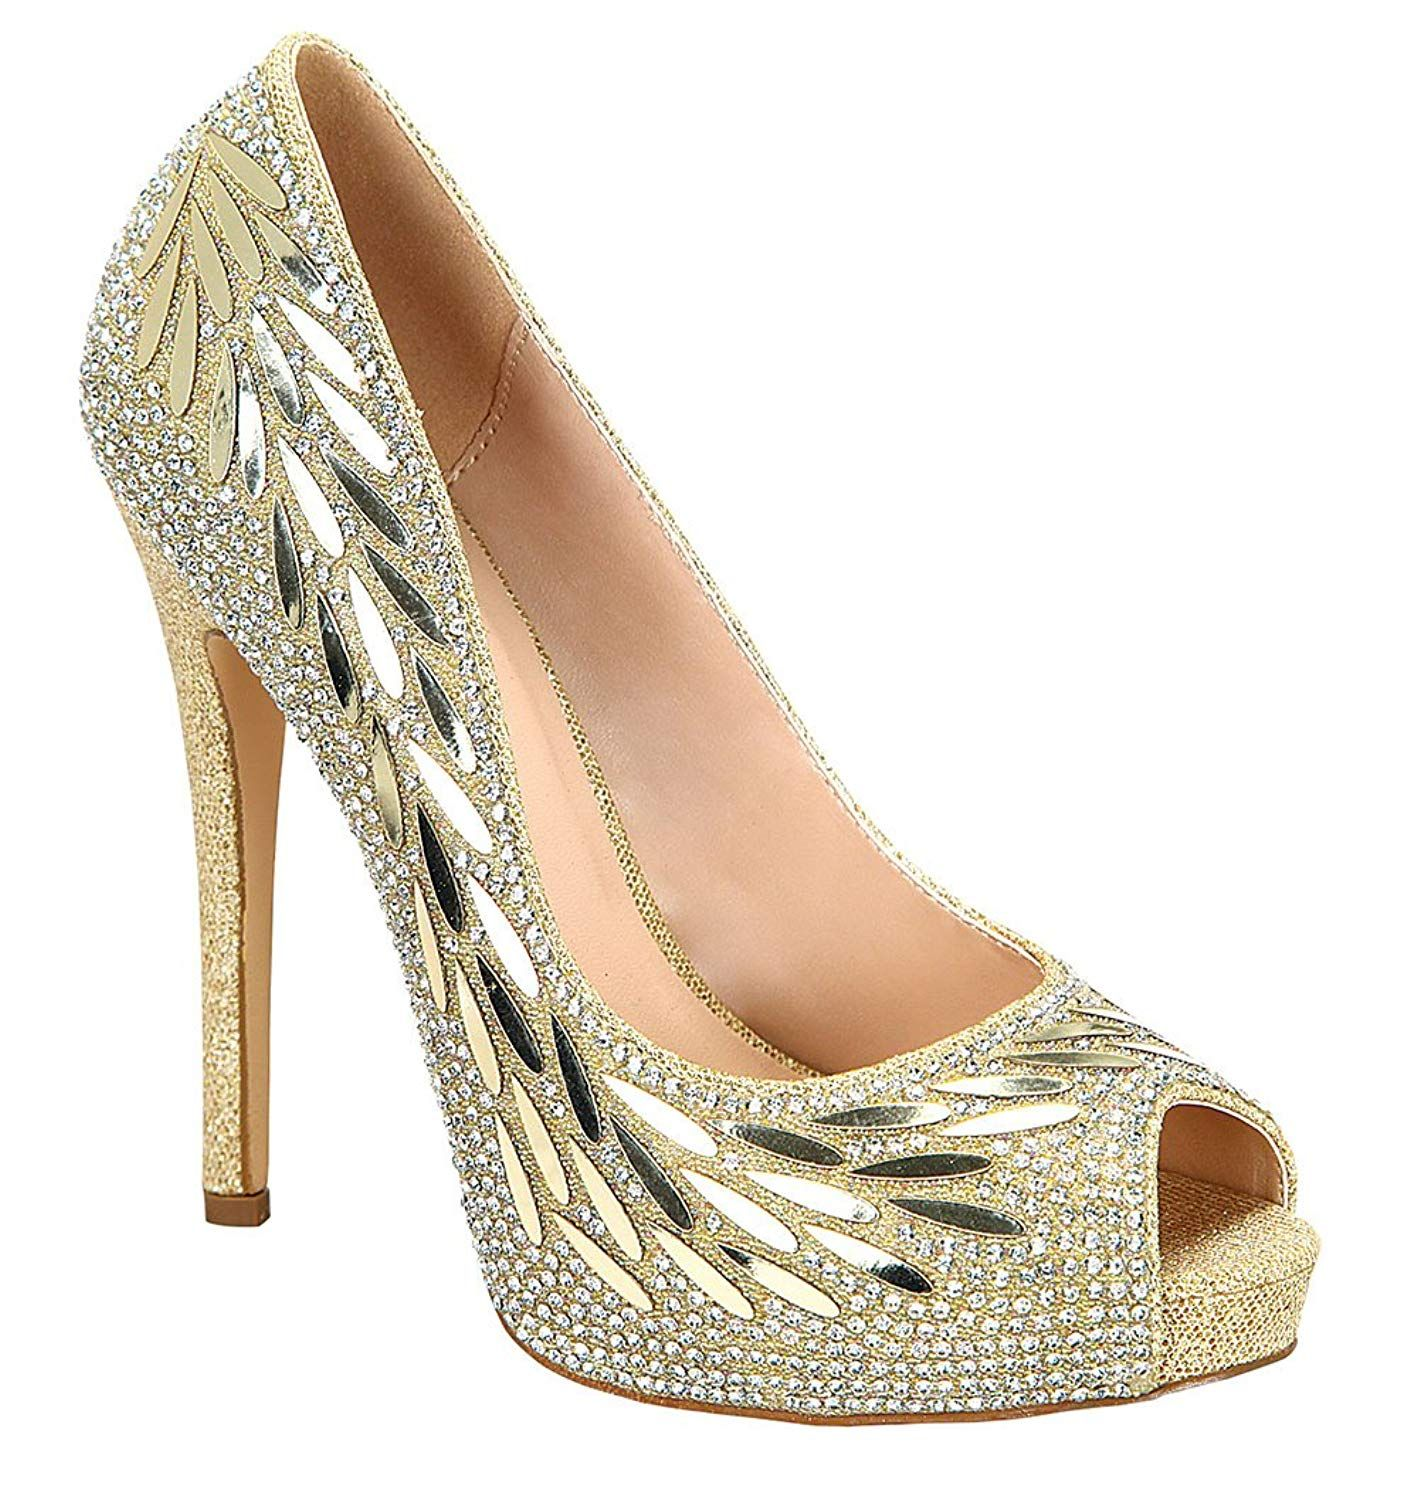 ba18d1469ffca0 ... Shoe Trends. De Blossom Collection Women s Rhinestone Floral Detail Peep  Toe Platform. Sparkle and shine all night